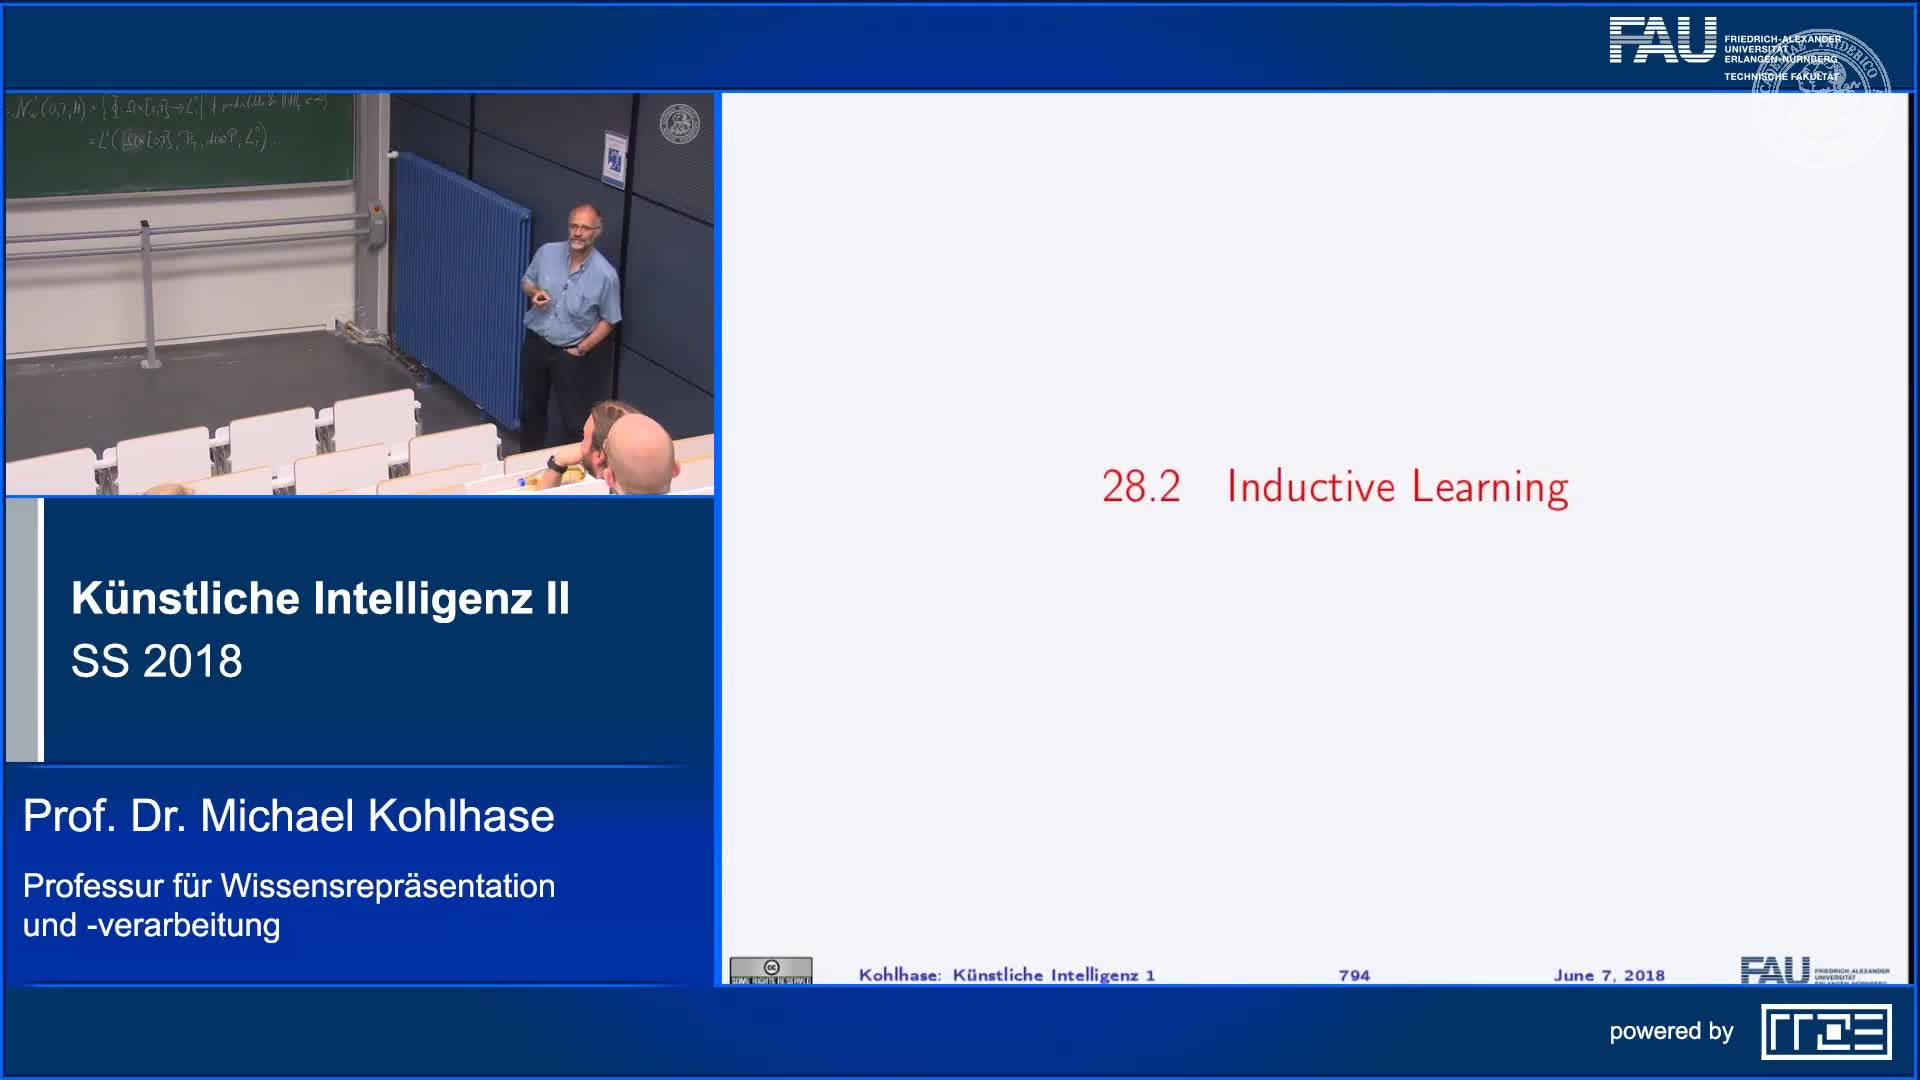 25.2. Inductive Learning preview image